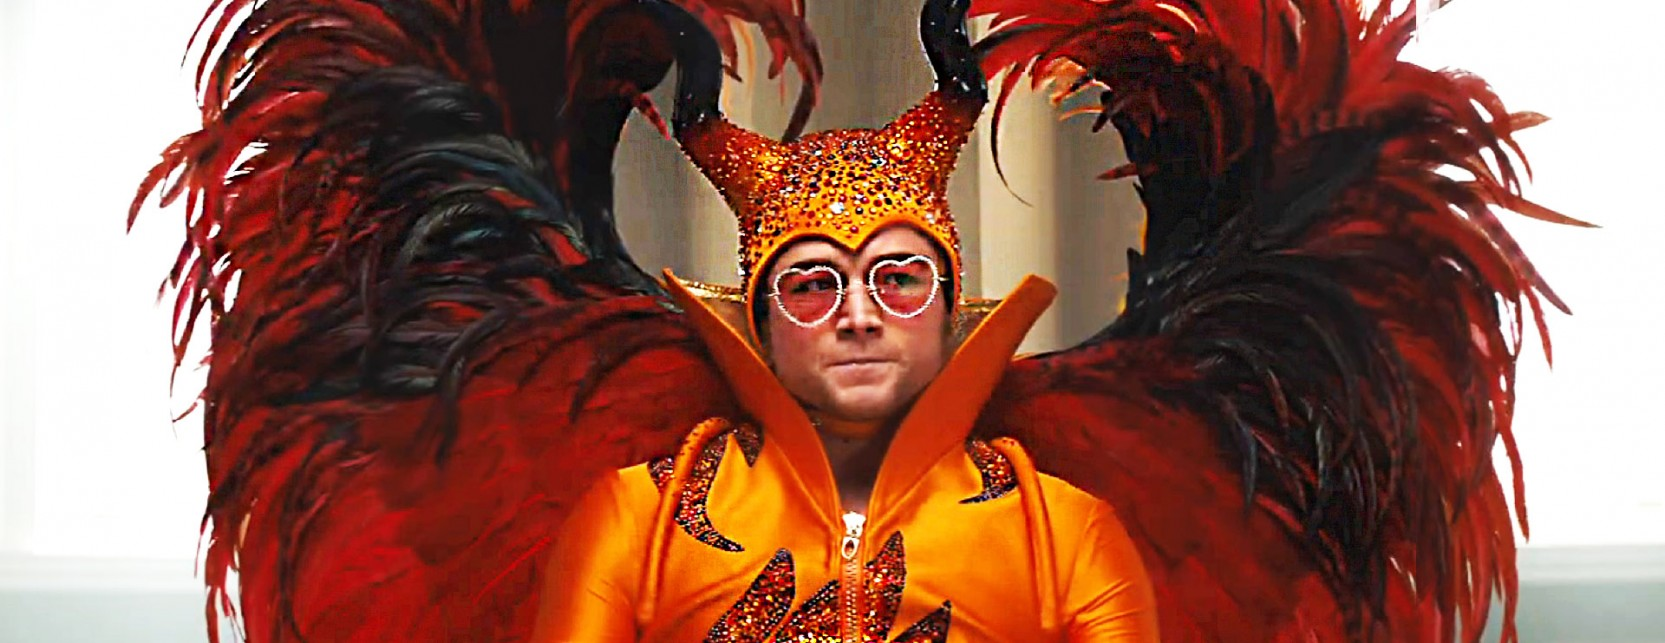 Rocketman speelfilm